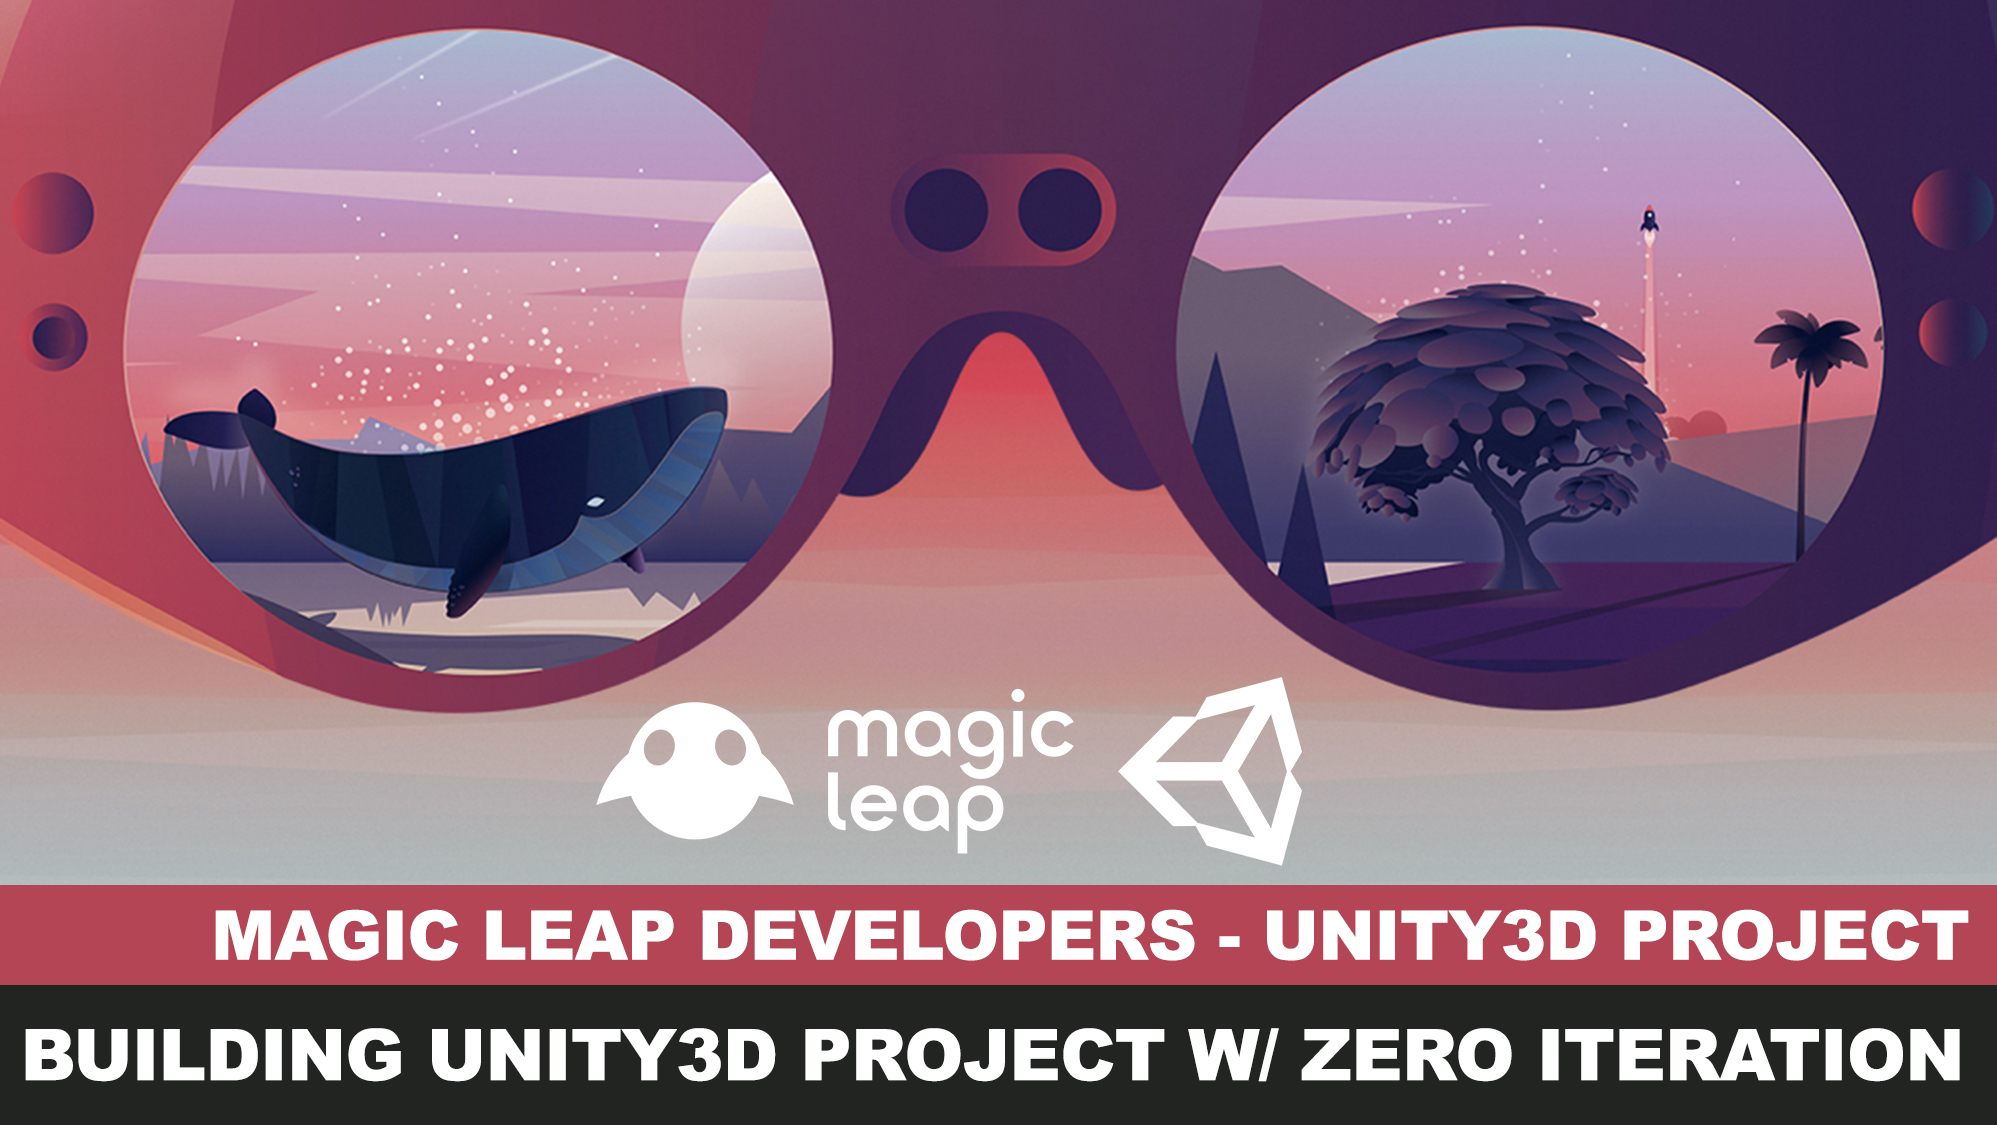 Magic Leap Creators - Building Unity3d project with zero iteration and creating virtual rooms